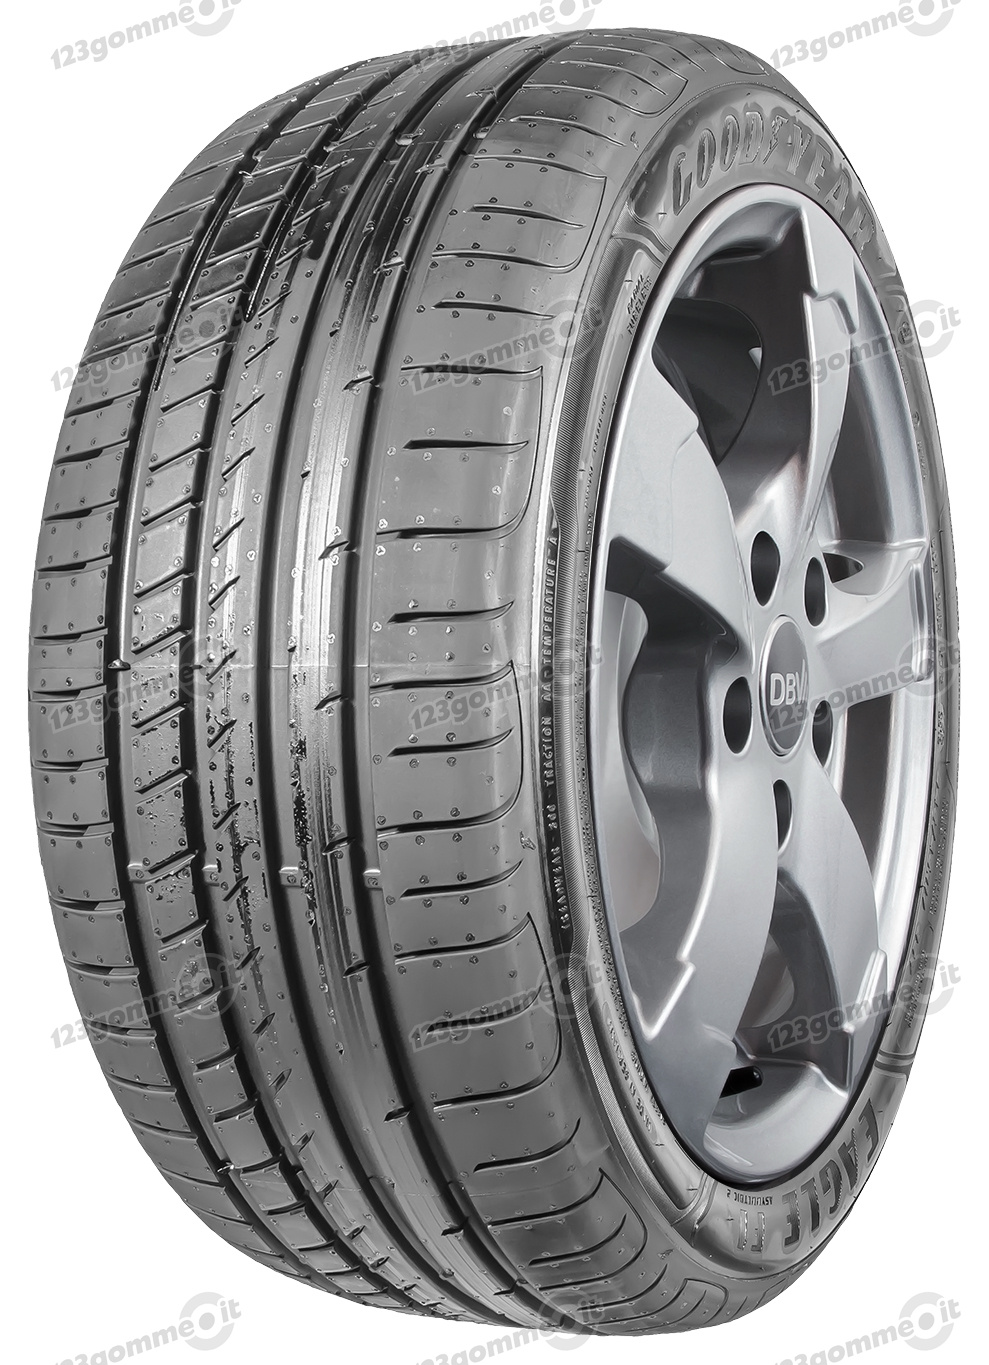 235/40 ZR19 (92Y) Eagle F1 Asymmetric 2 N0 FP  Eagle F1 Asymmetric 2 N0 FP